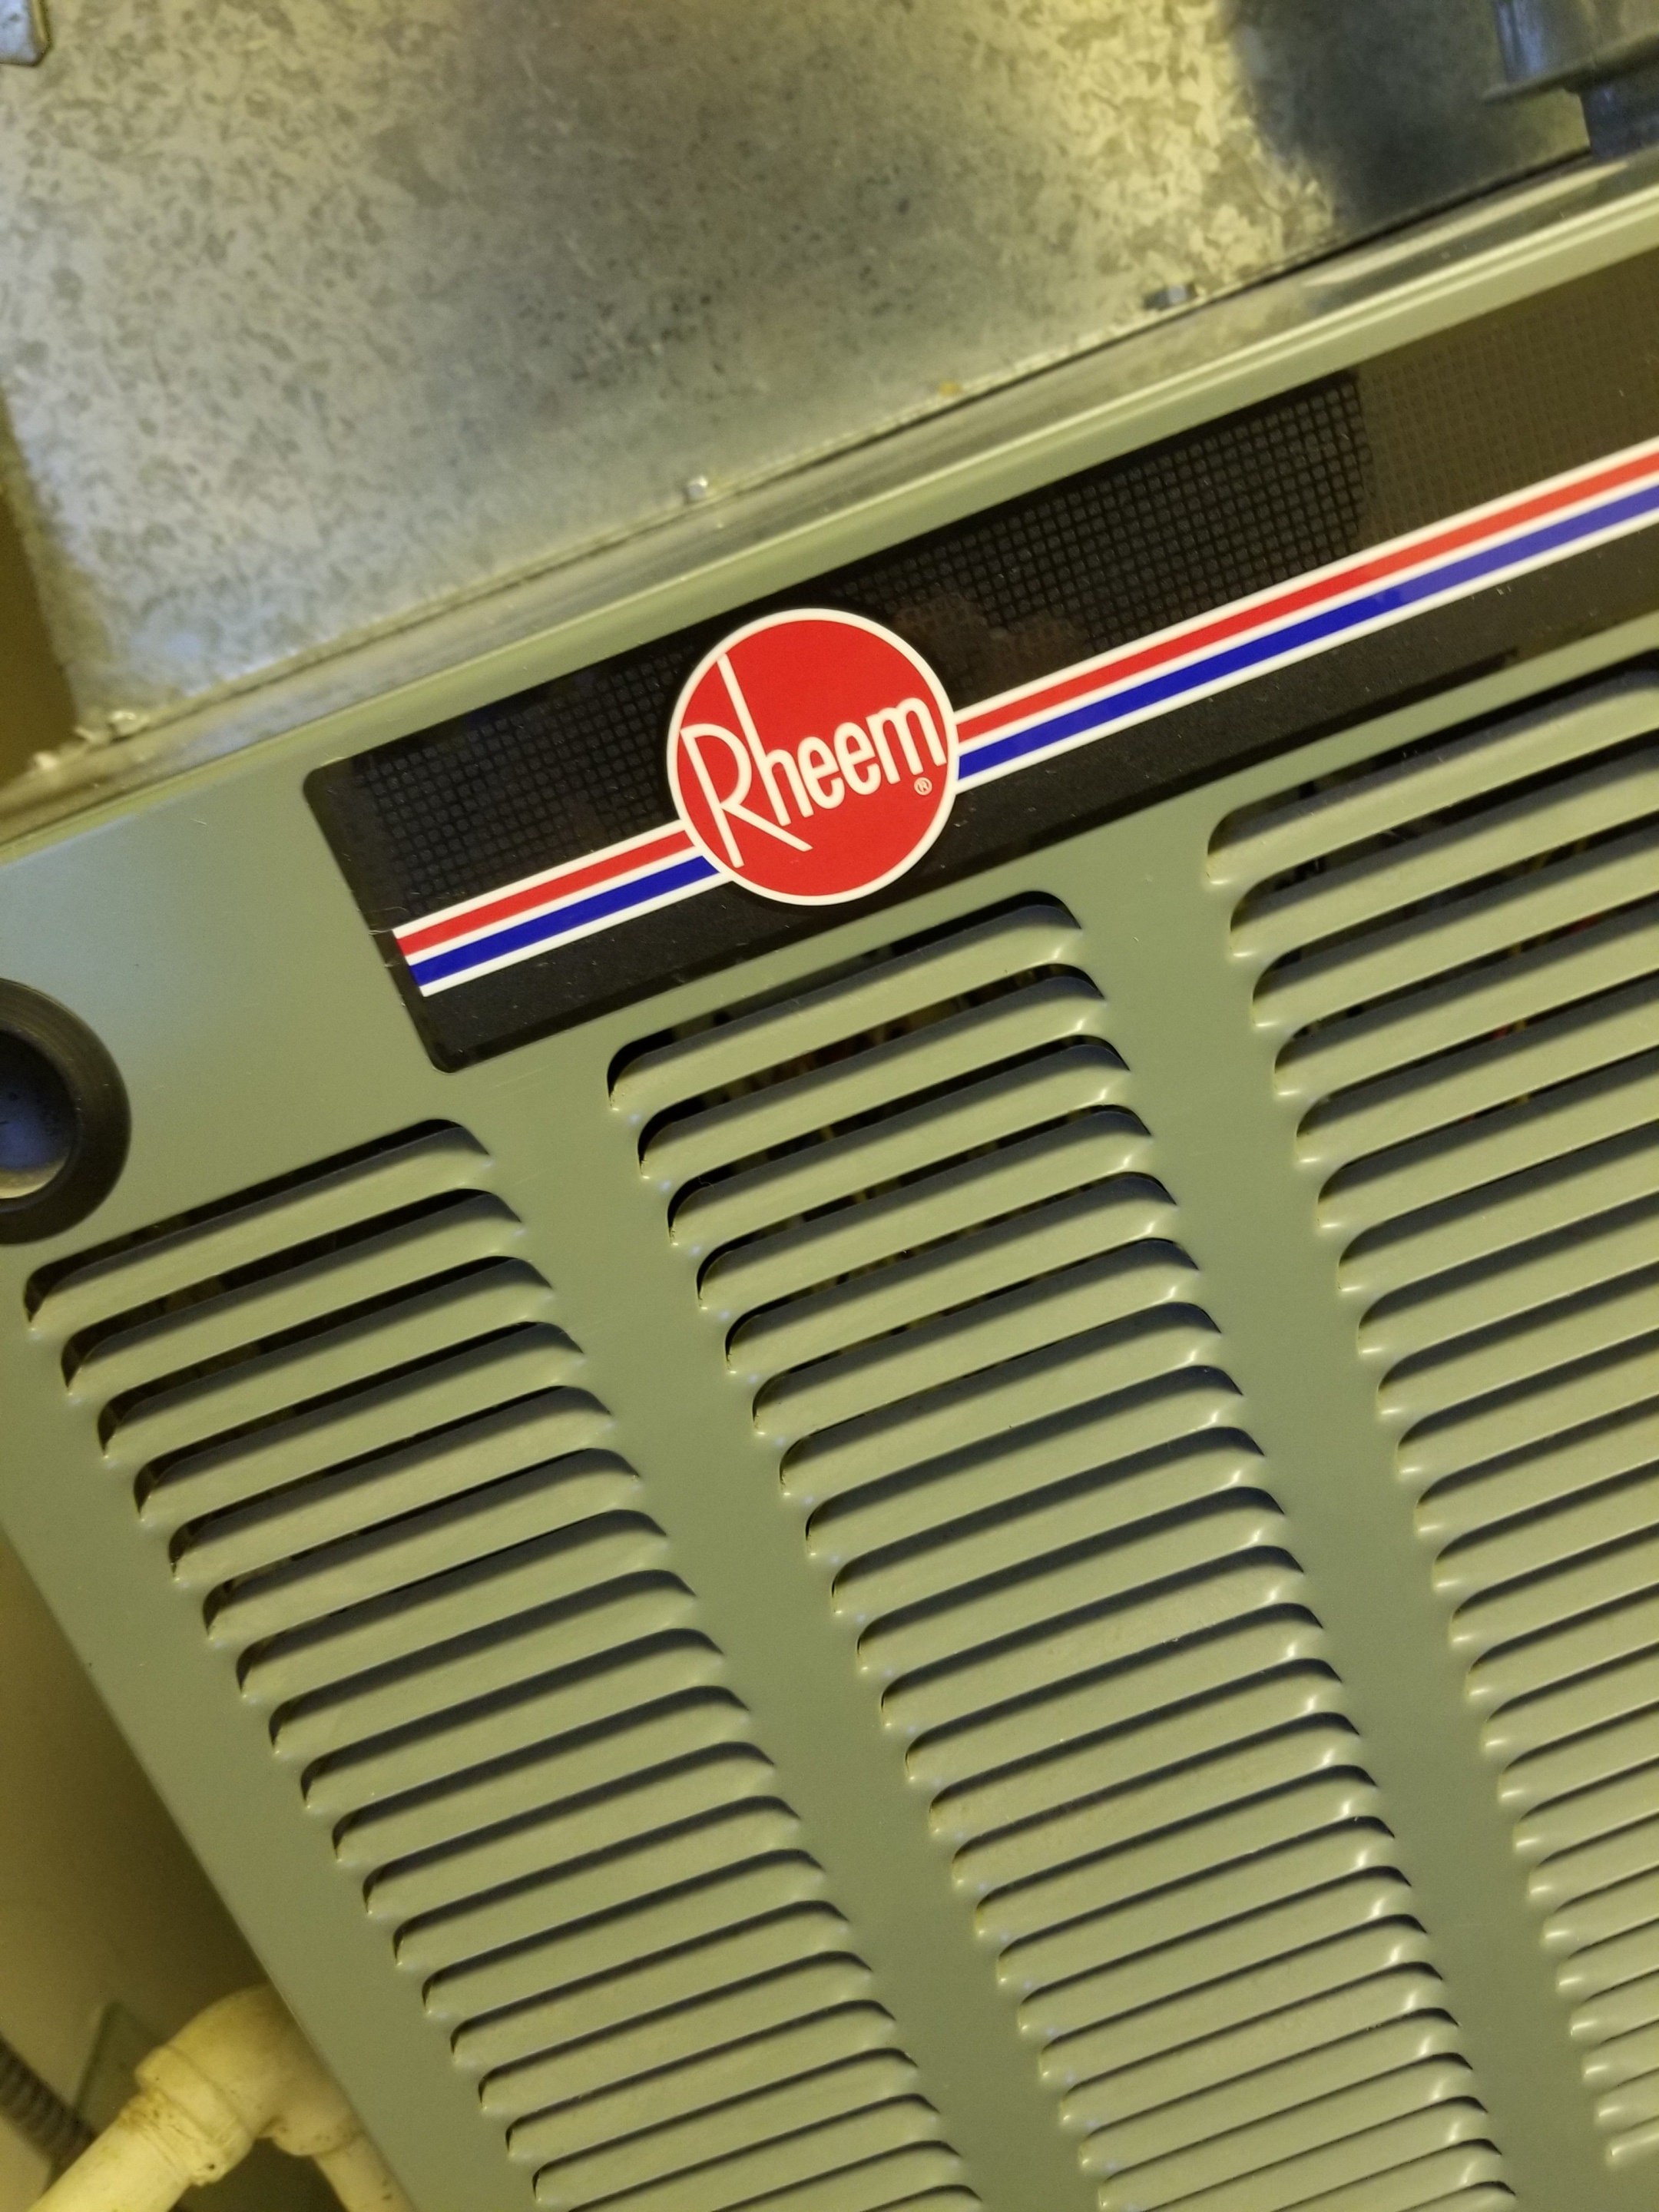 Performed annual maintenance on the Rheem furnace and made adjustments to improve the overall efficiency and life expectancy of the equipment